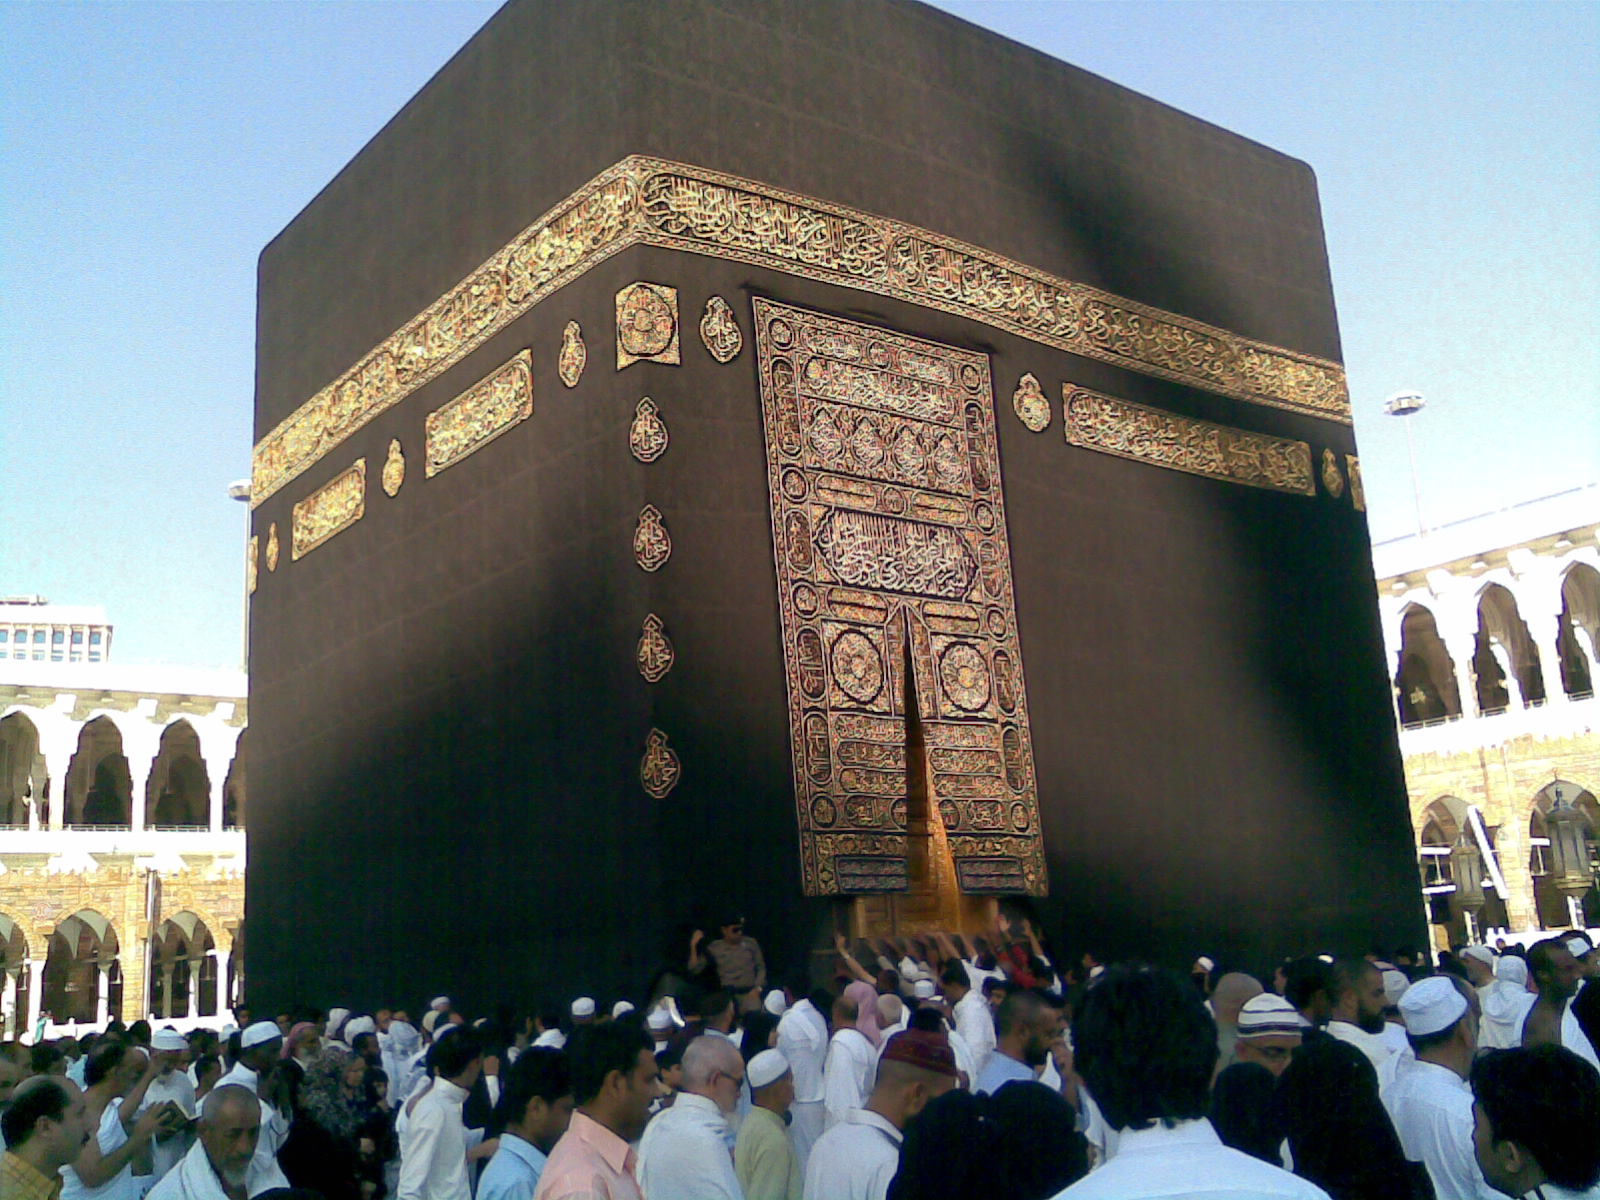 Image 14. മക്കയിലെ കഅബ [= Circumambulating] the Kaaba [Ka`bah] in Meca [Makka = Mecca, Saudi Arabia]. Photo by Yousefmadari at ml.wikipedia.